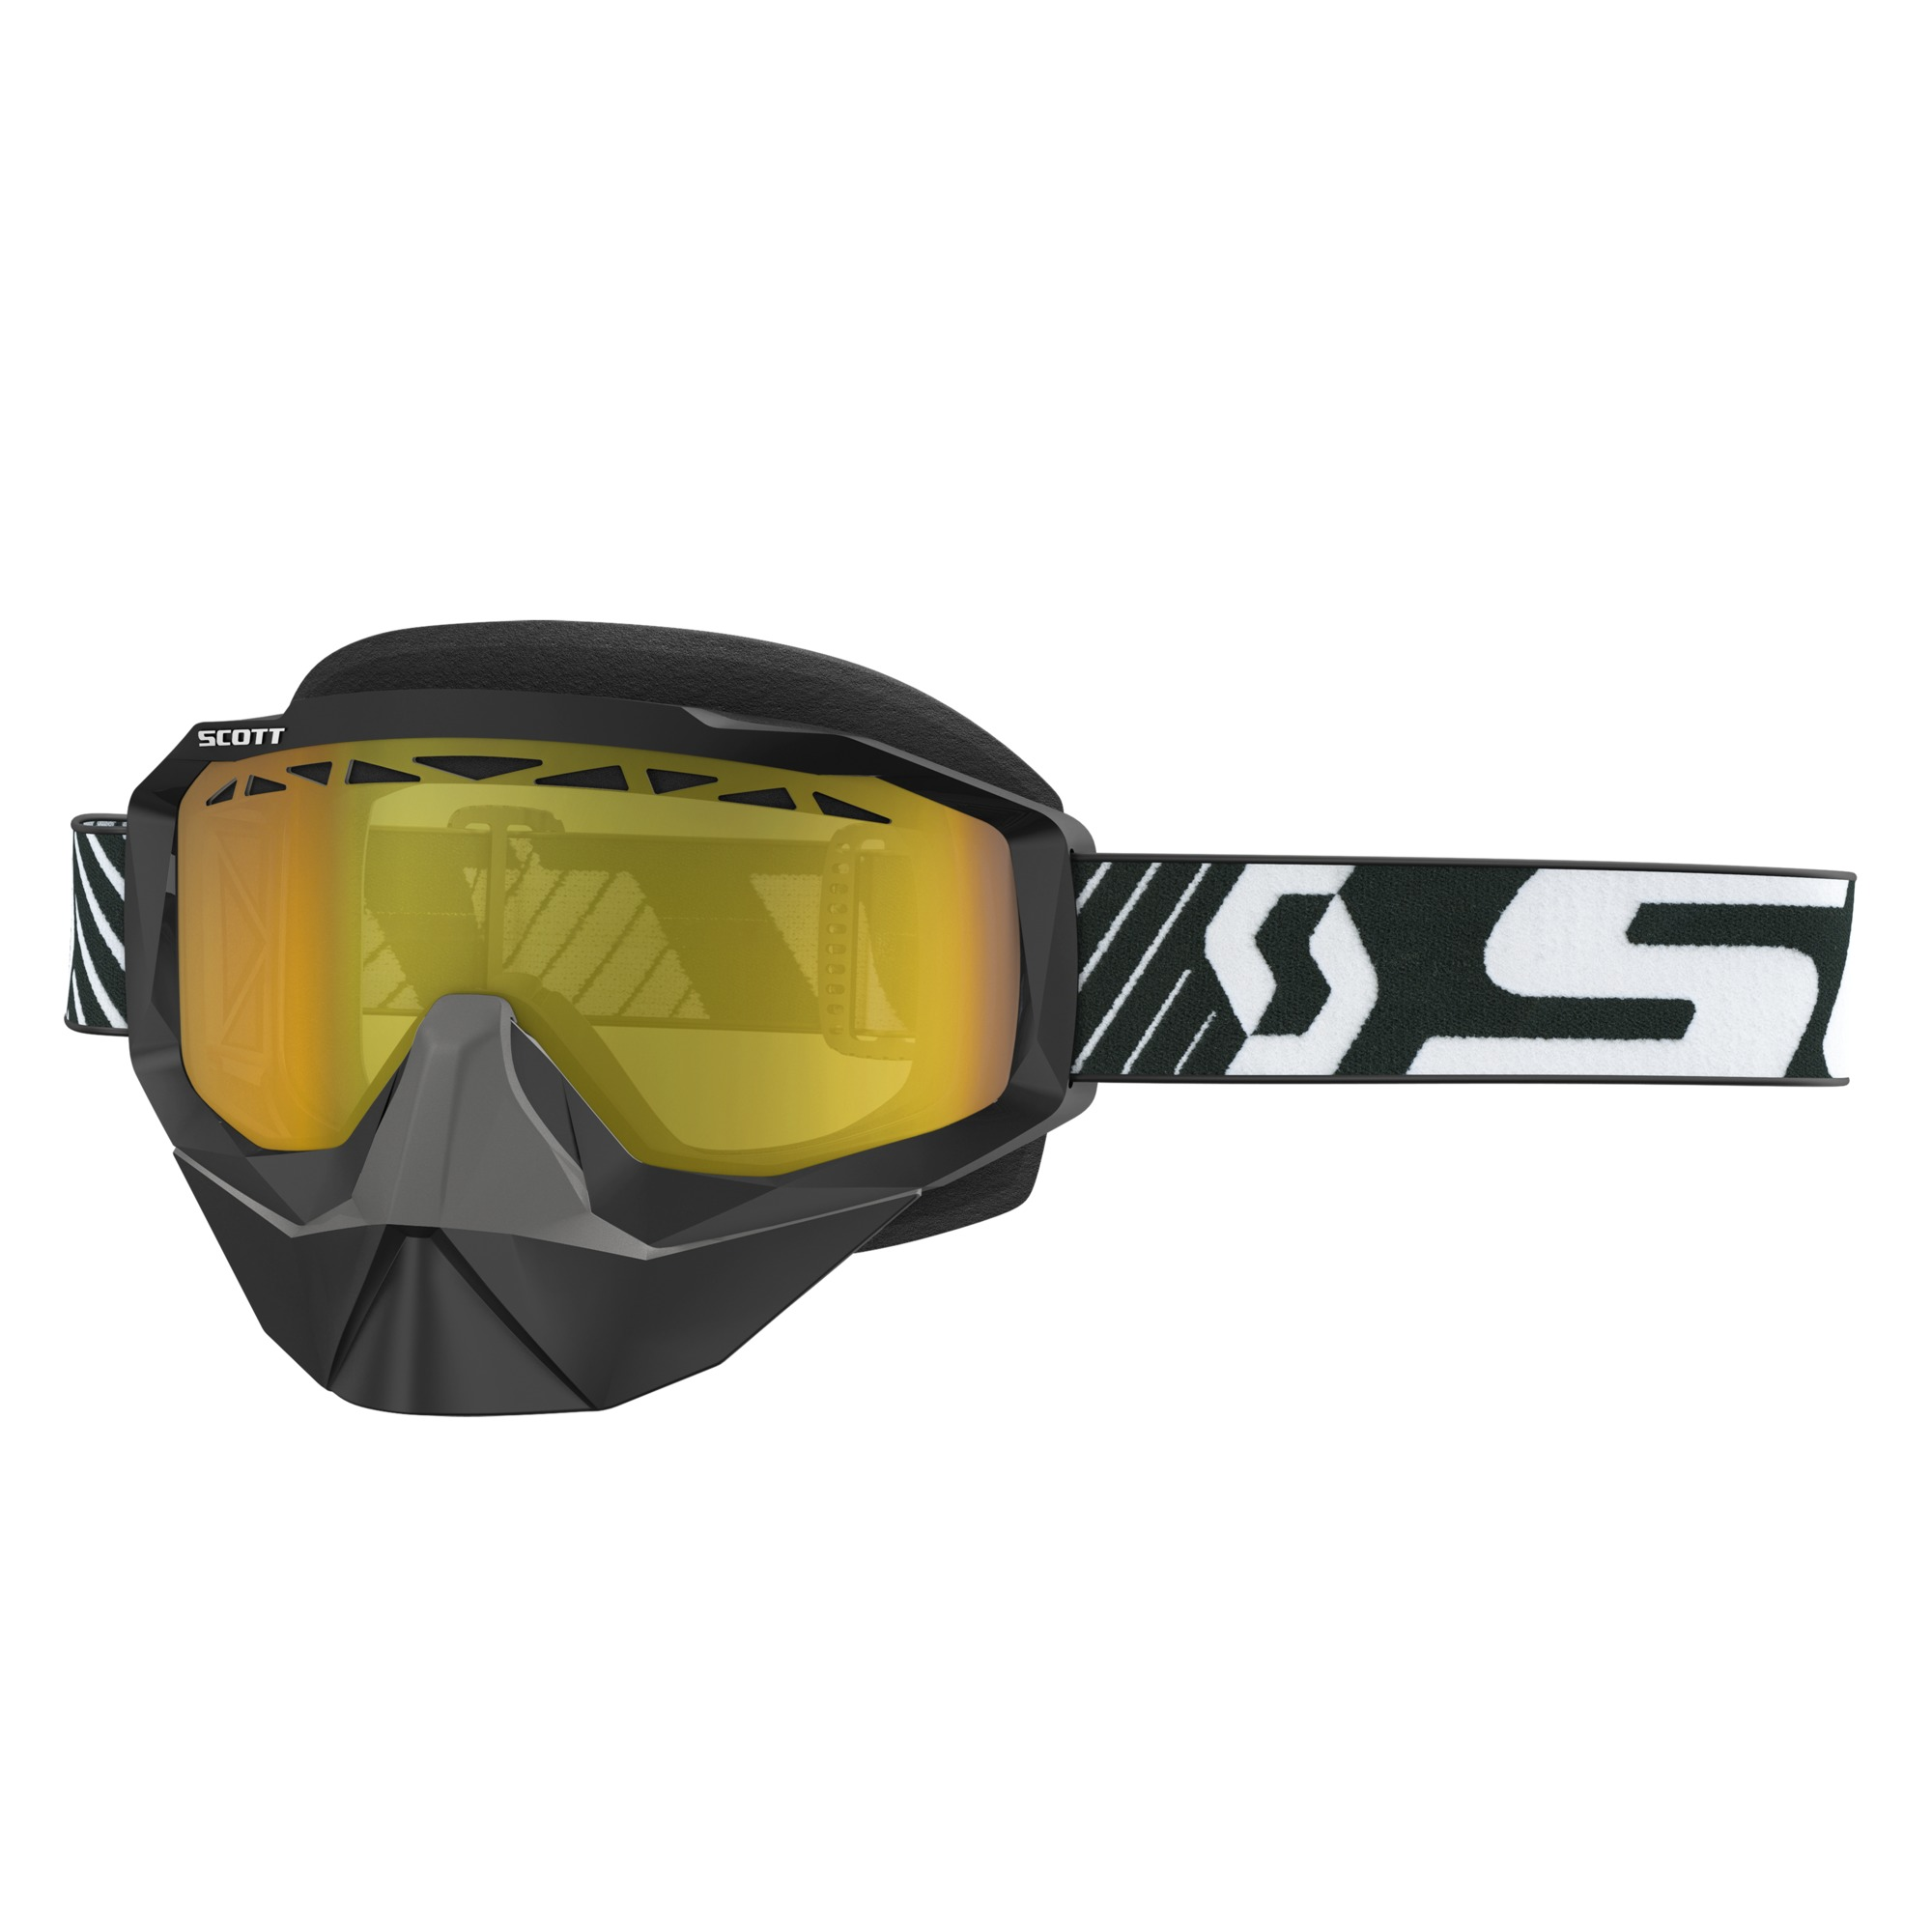 SCOTT Hustle Snow Cross Schutzbrille